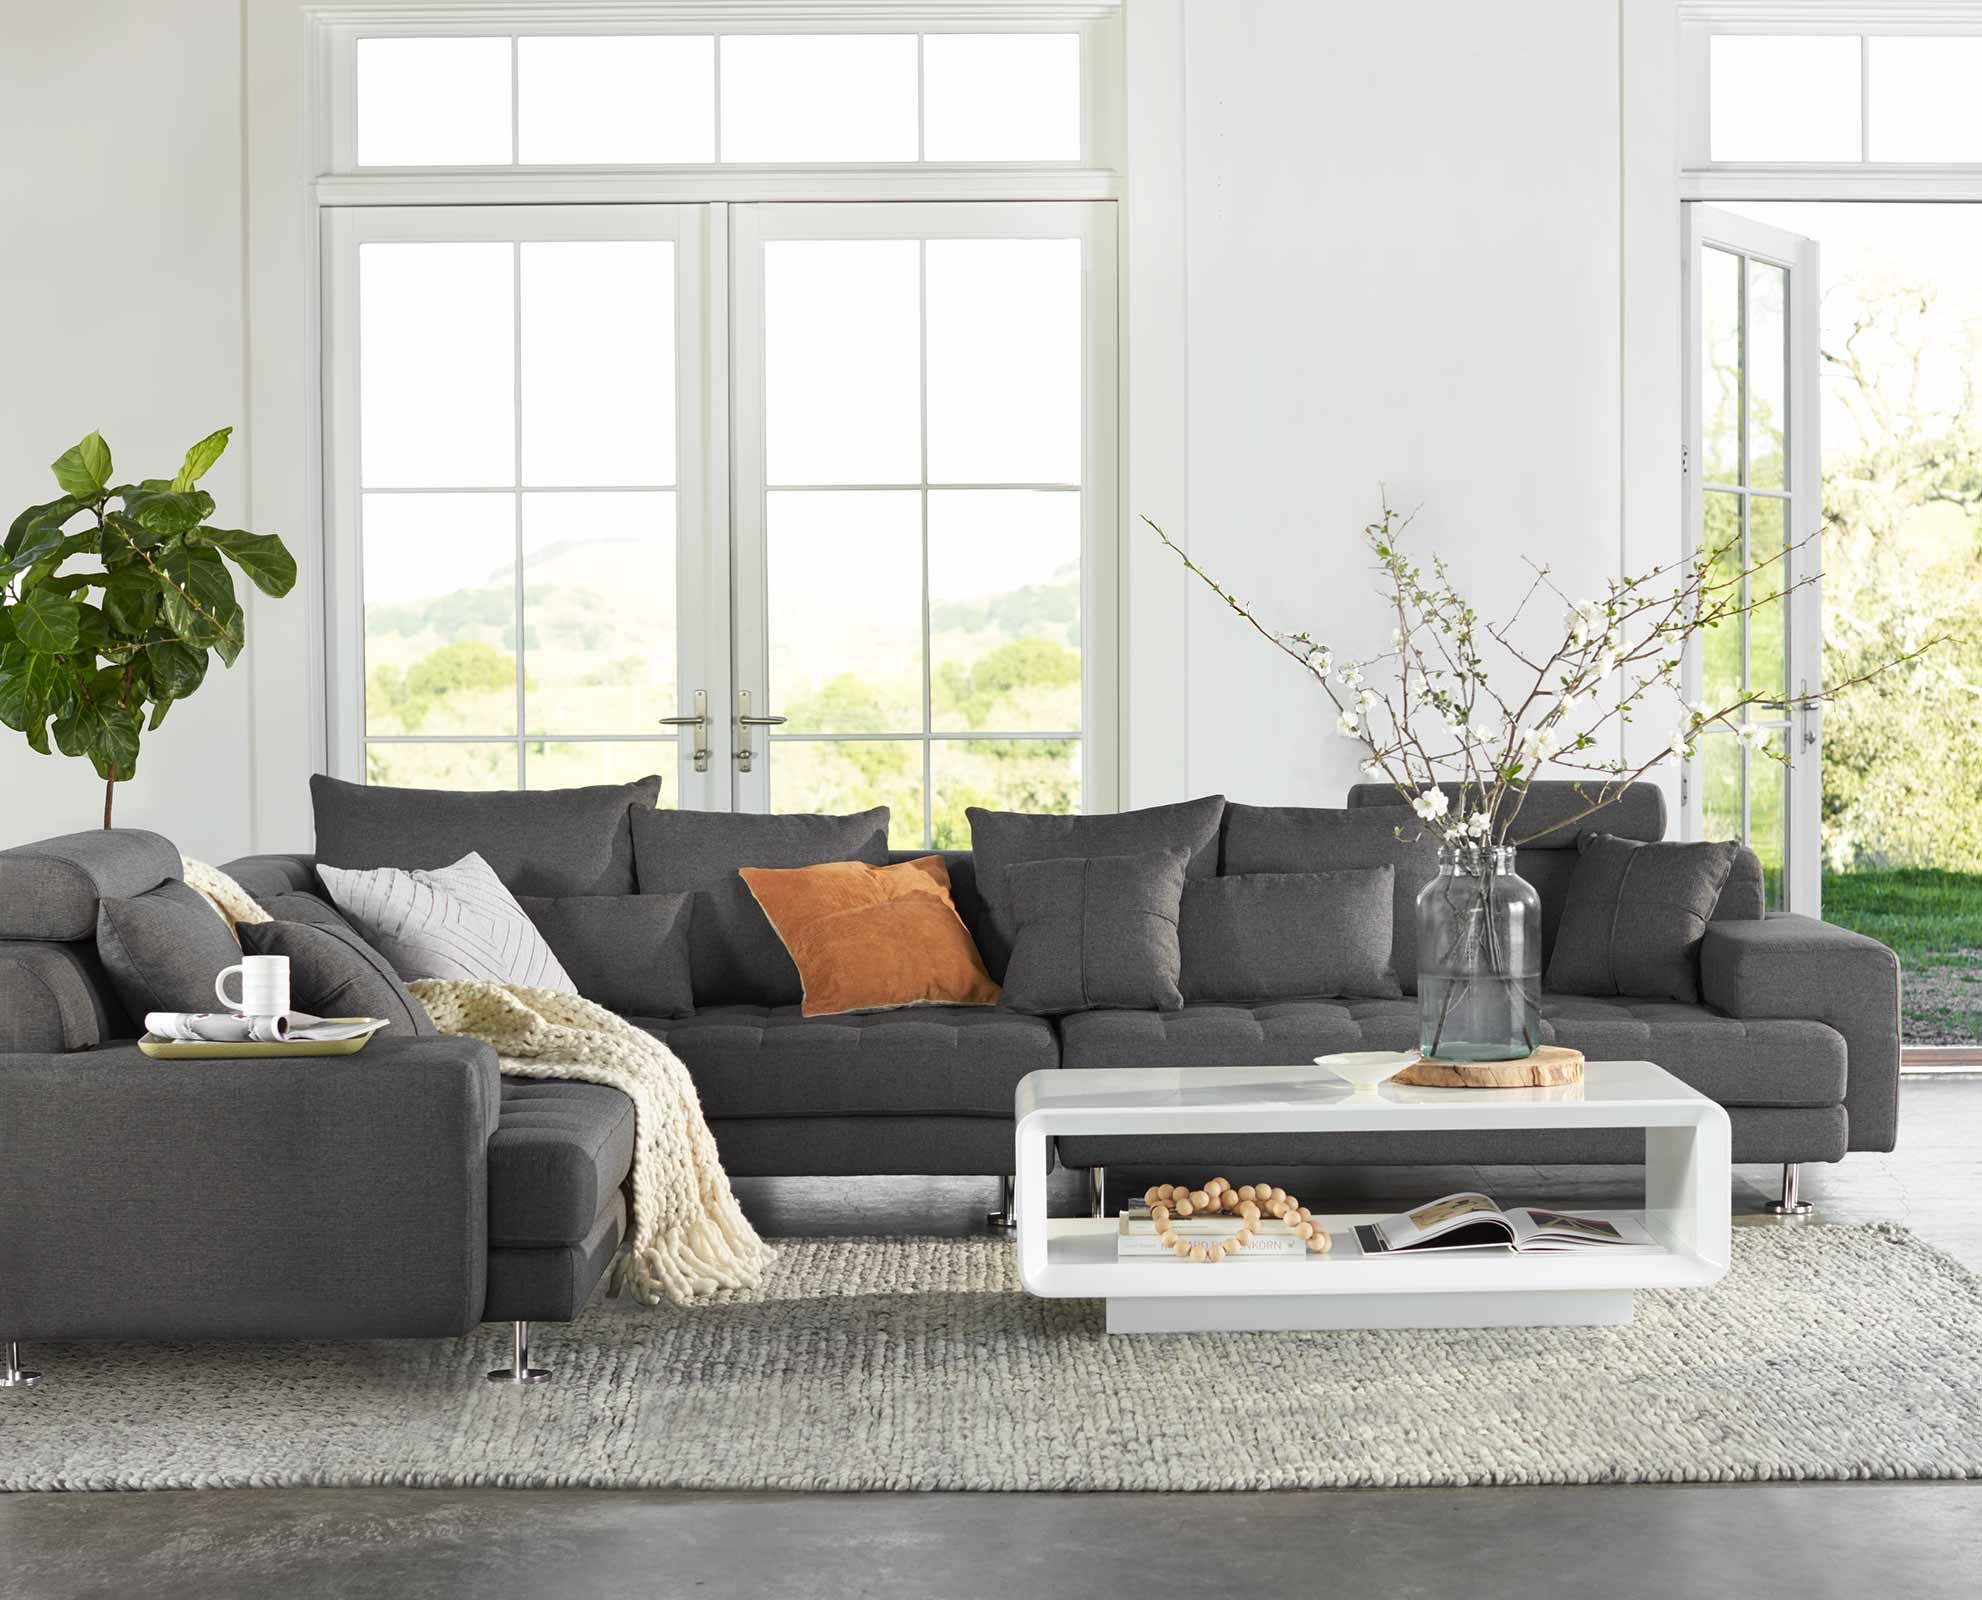 Beau Scandinavian Designs   Sink Into The All Around Comfort Of The Cepella  Sectional. With Plenty Of Room For The Entire Family, This Sectional  Combines A ...